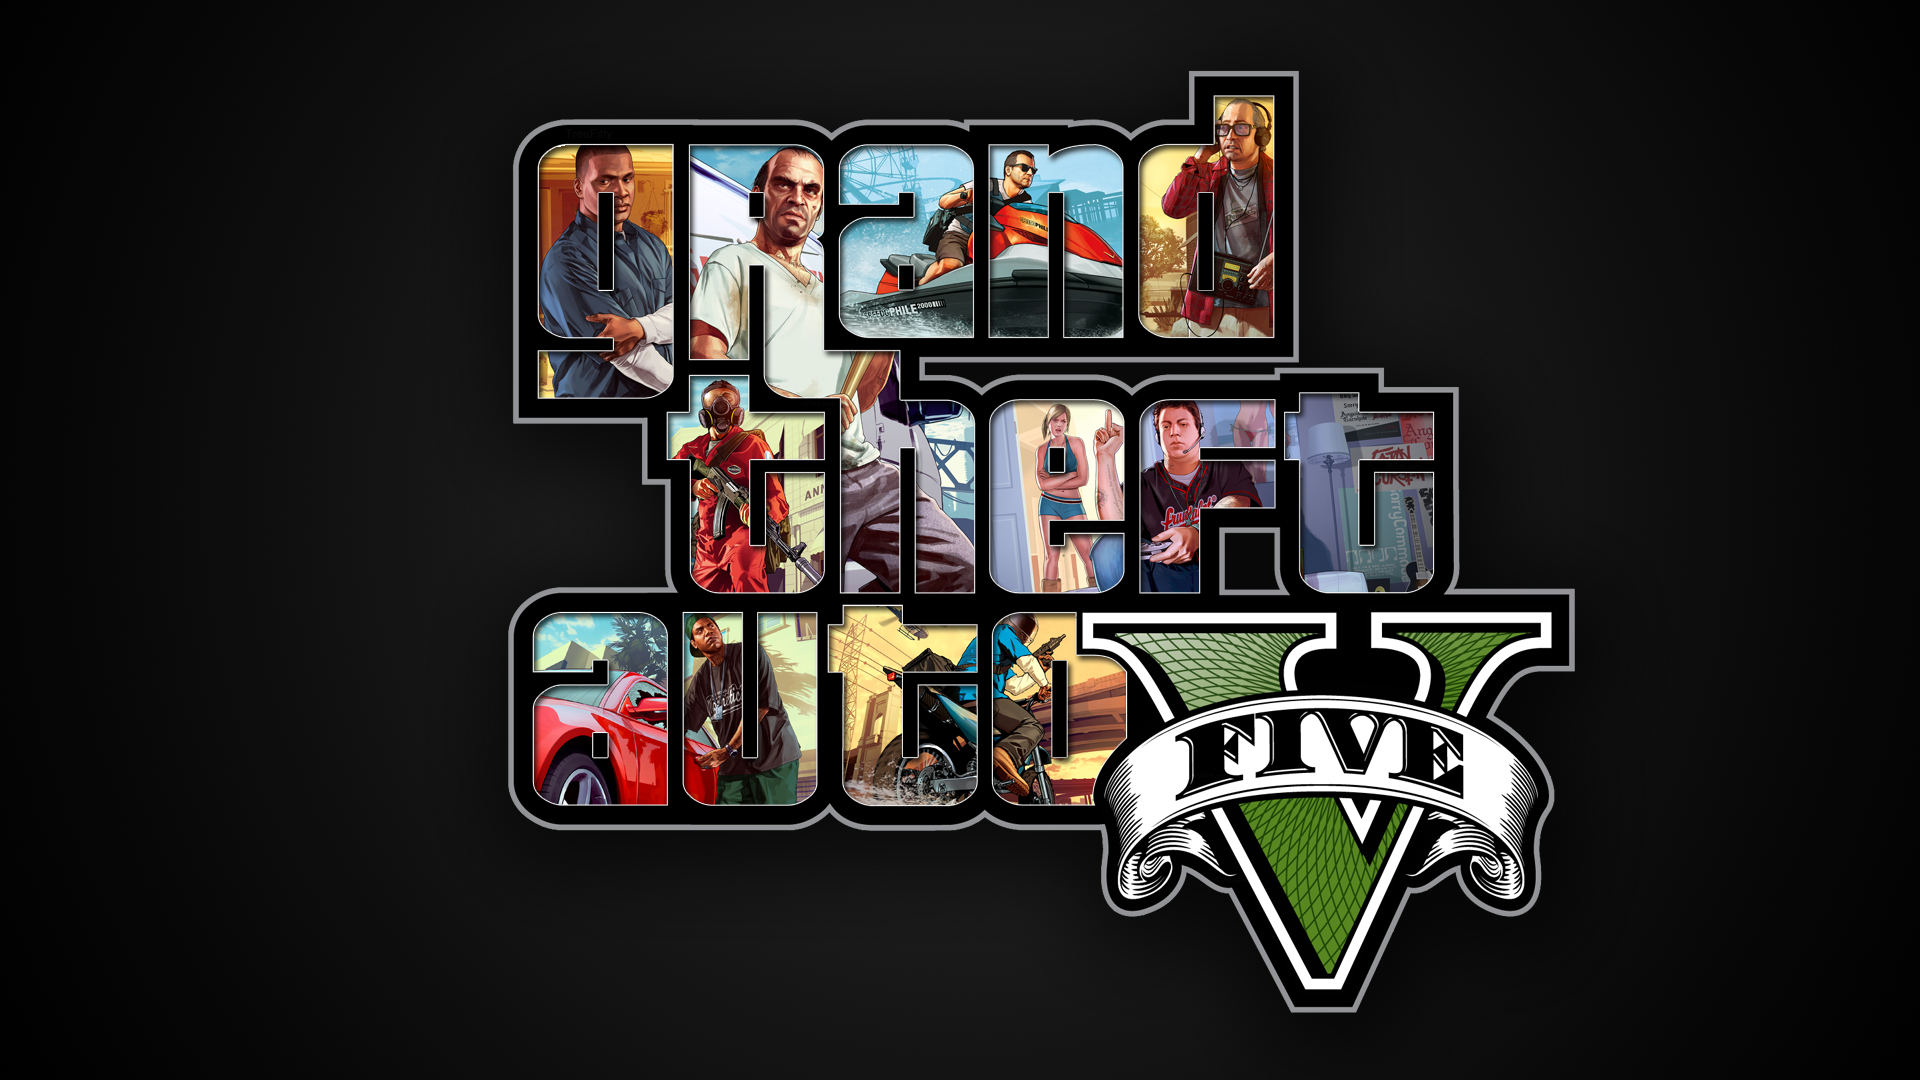 gta v wallpaper by xtiiger fan art wallpaper games 2013 2015 xtiiger 1920x1080